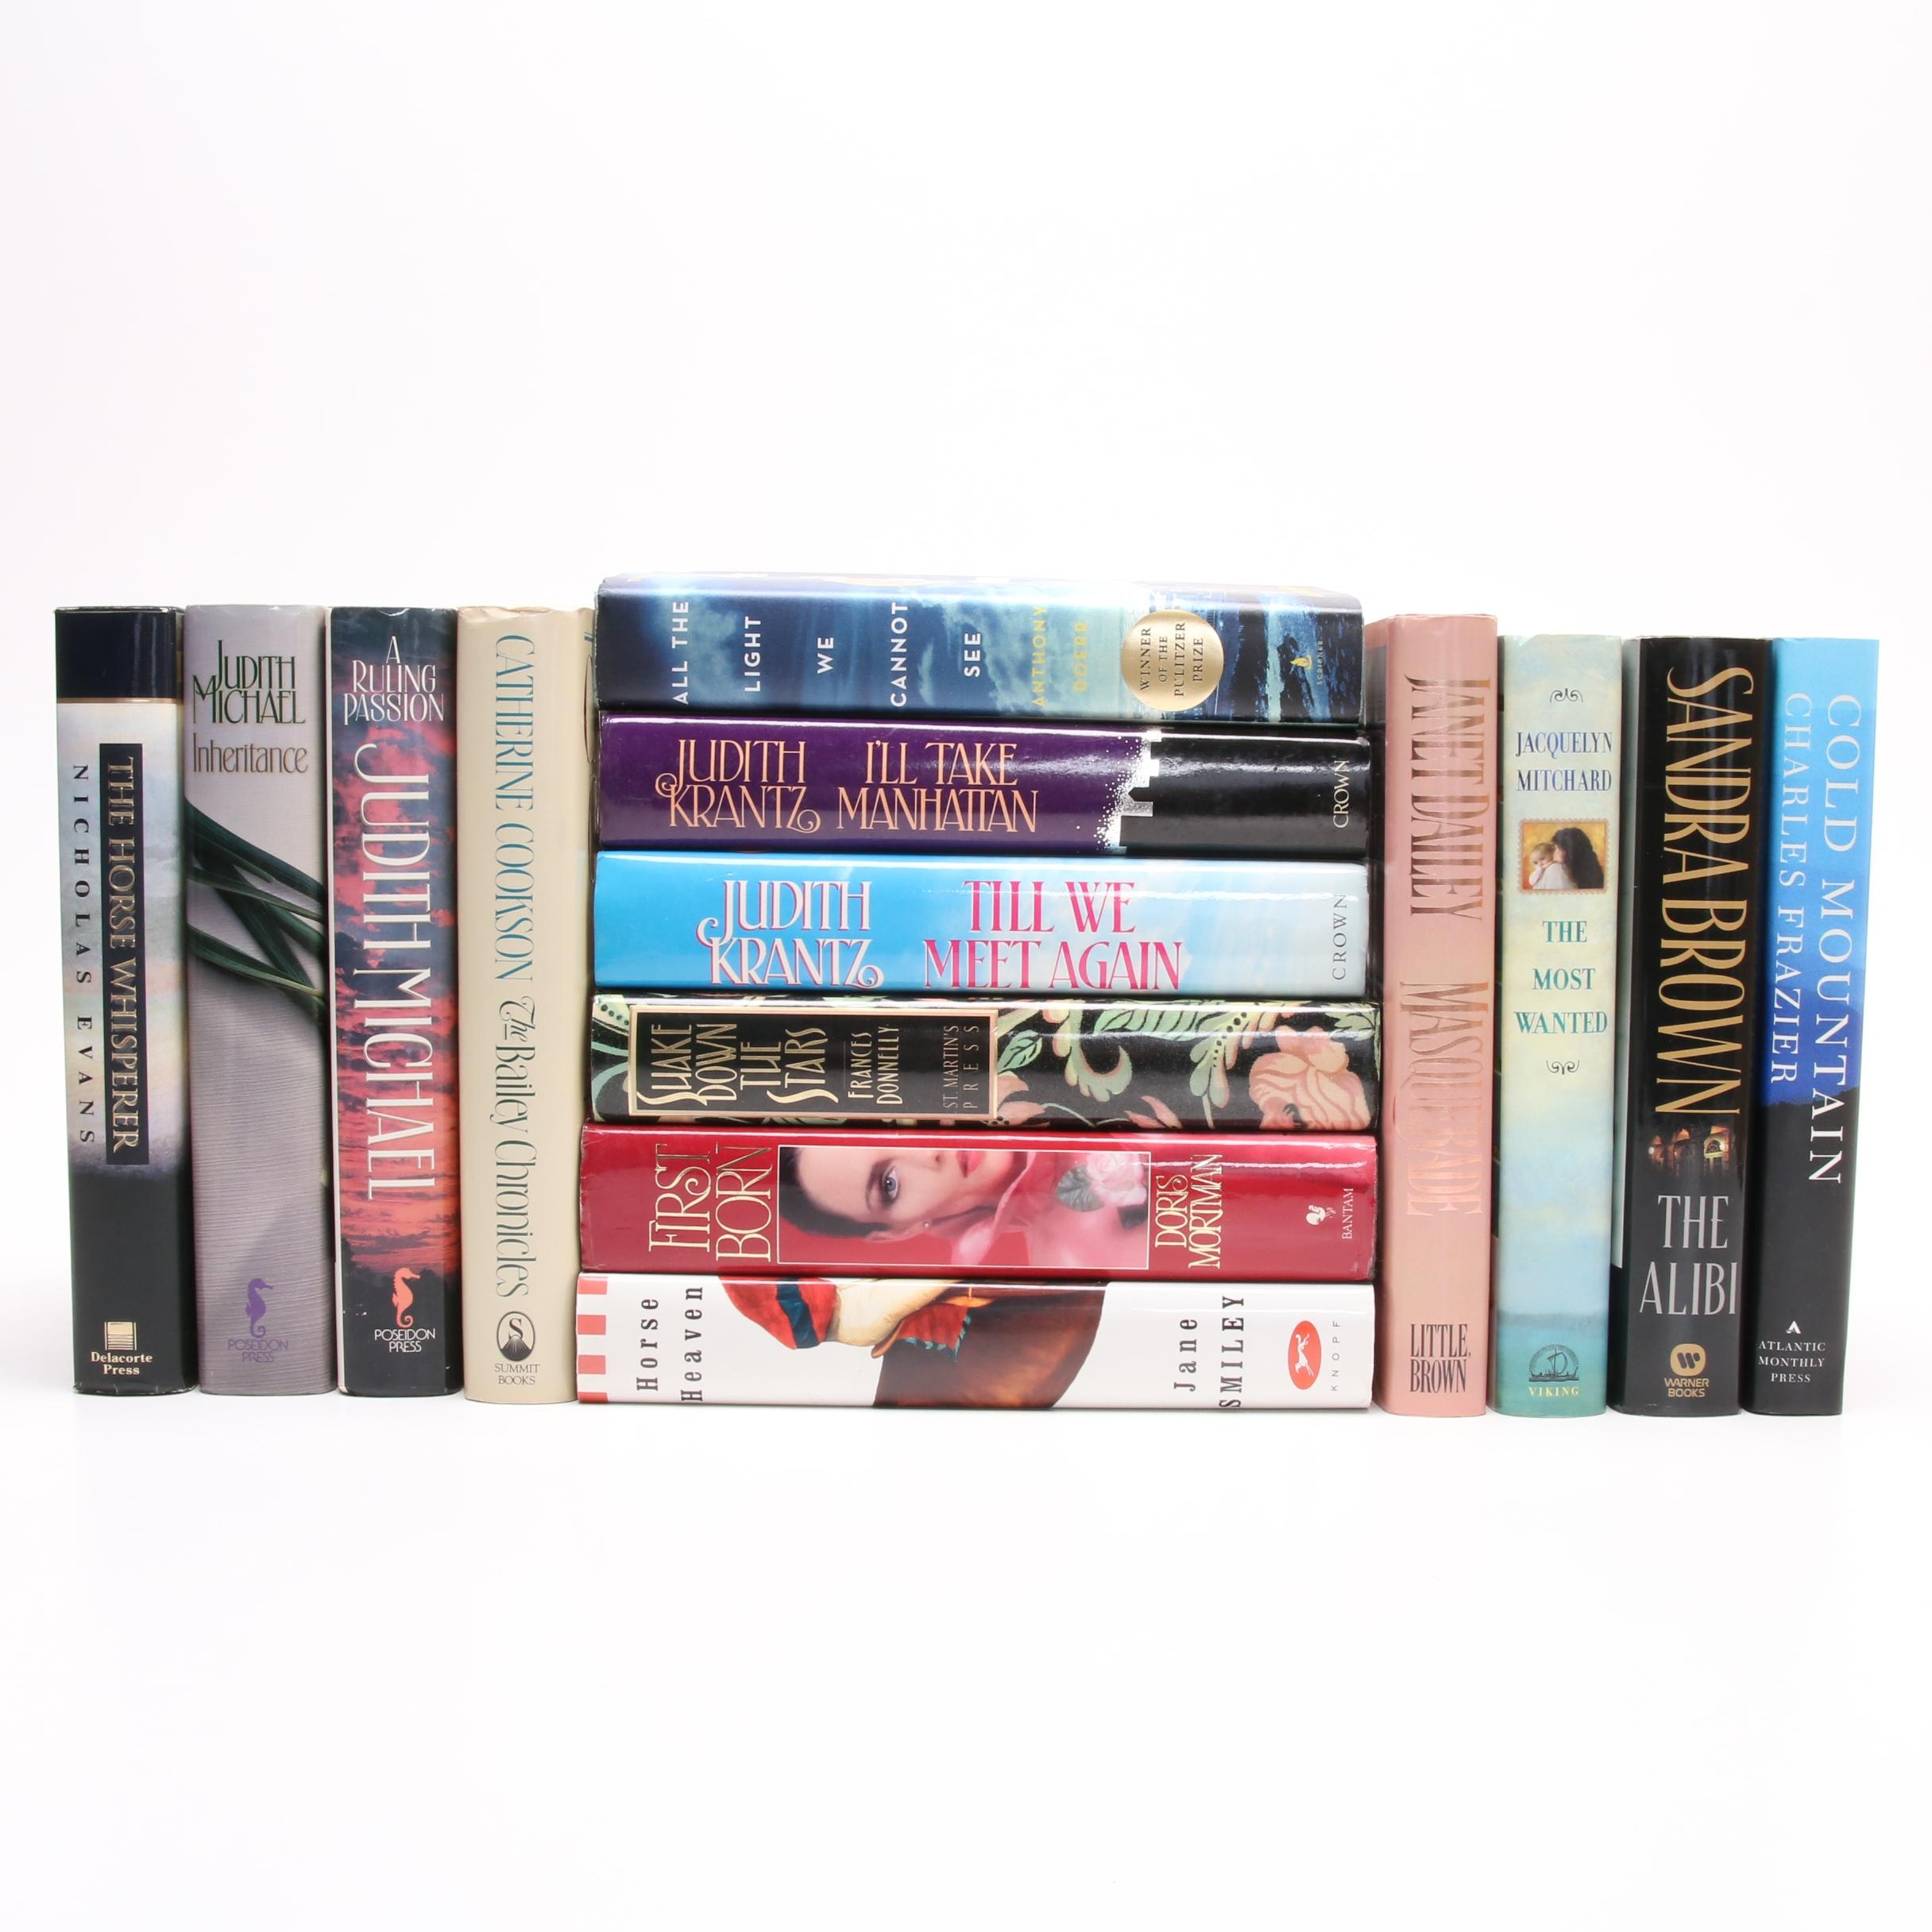 Romance Book Collection featuring Authors  Michael, Evans, Brown and More